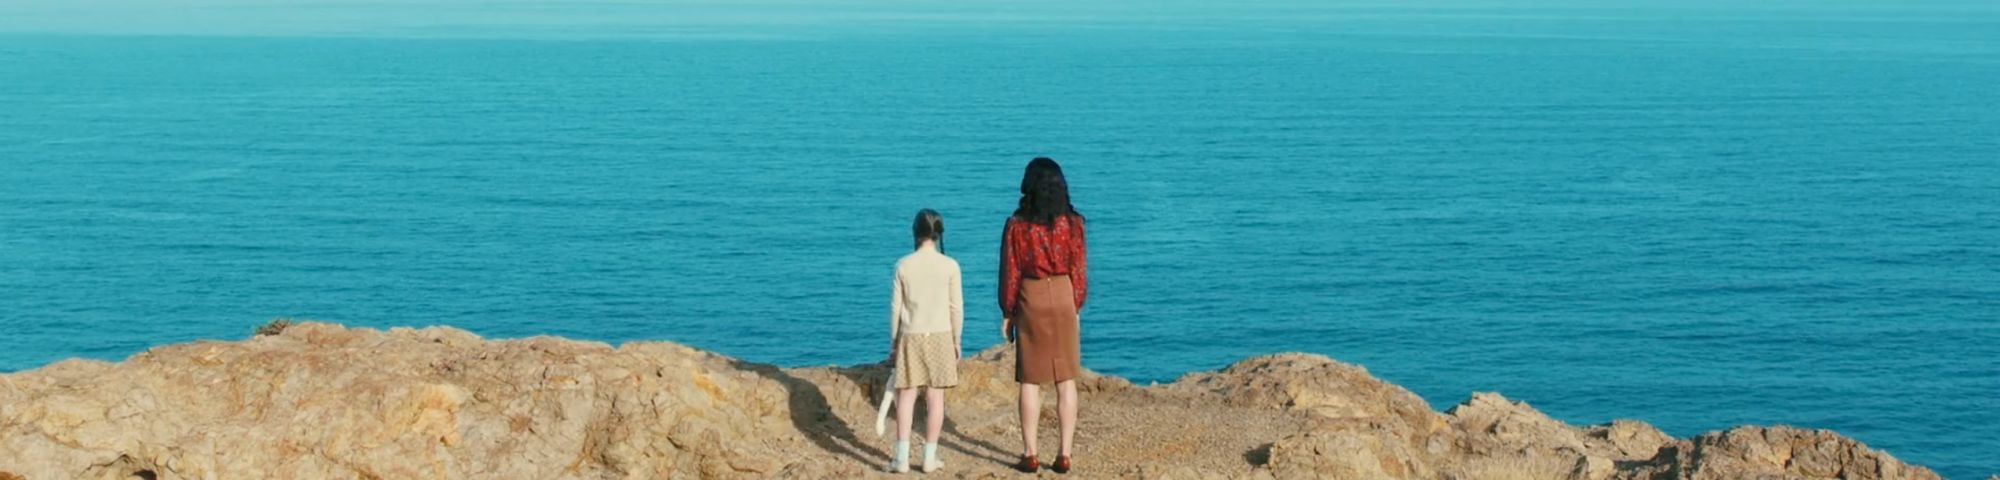 Screen shot from a film of two people standing on a cliff looking out into the sea.